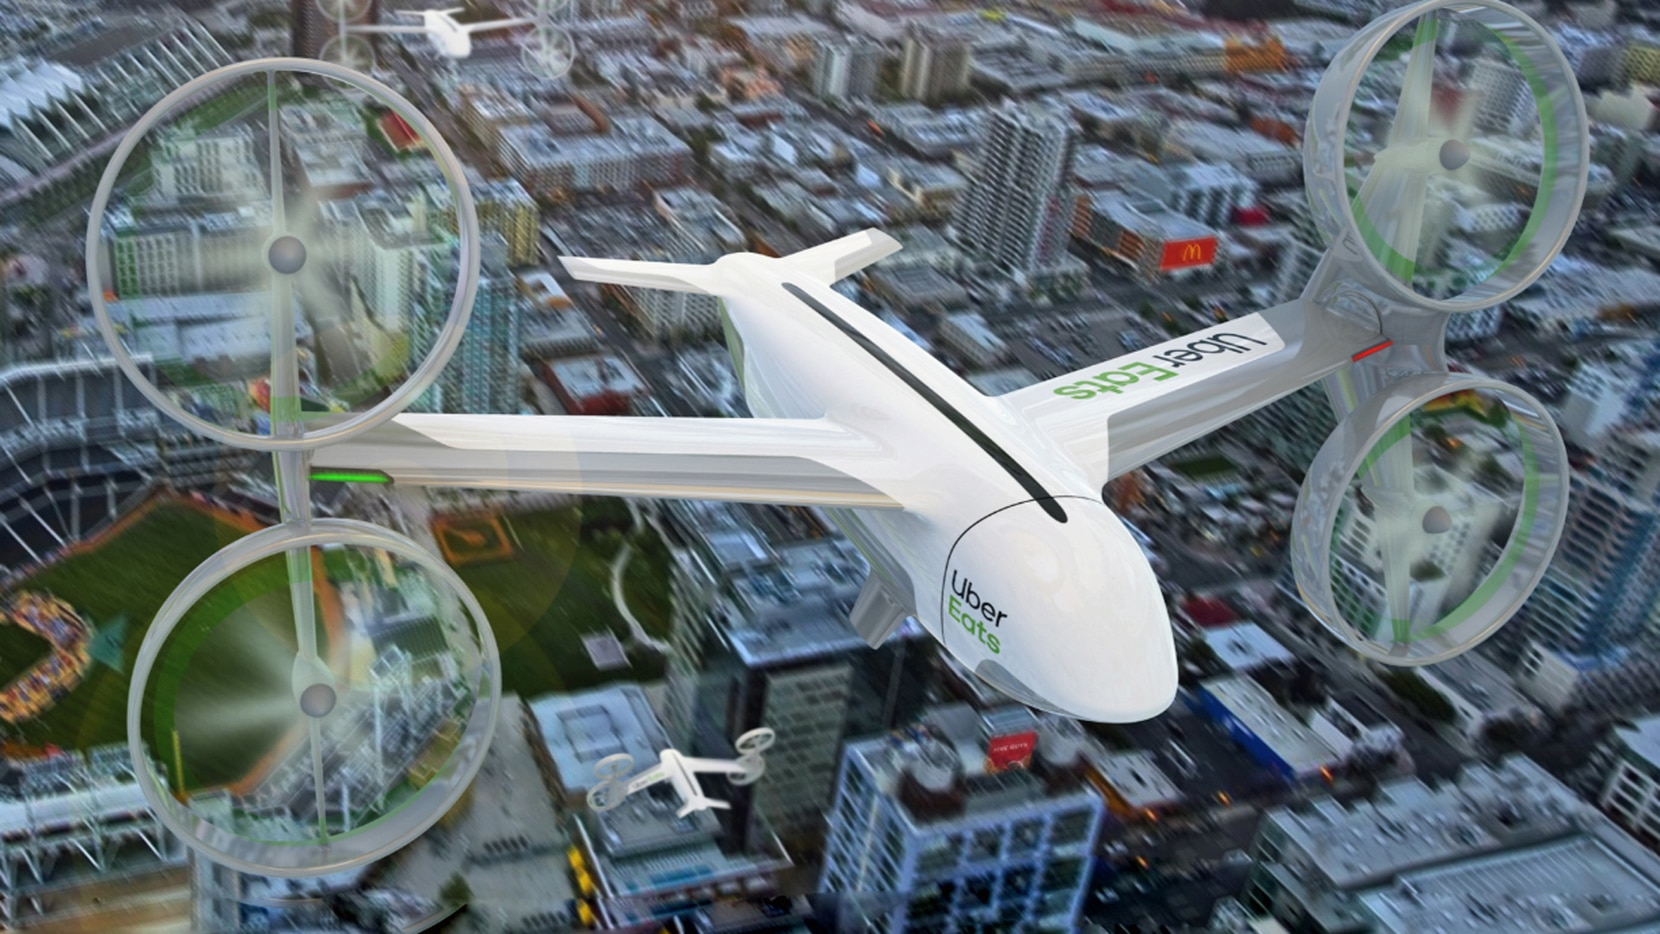 Uber is working with companies, including AT&T, to launch an urban air taxi service that could shuttle people and cargo through the skies.